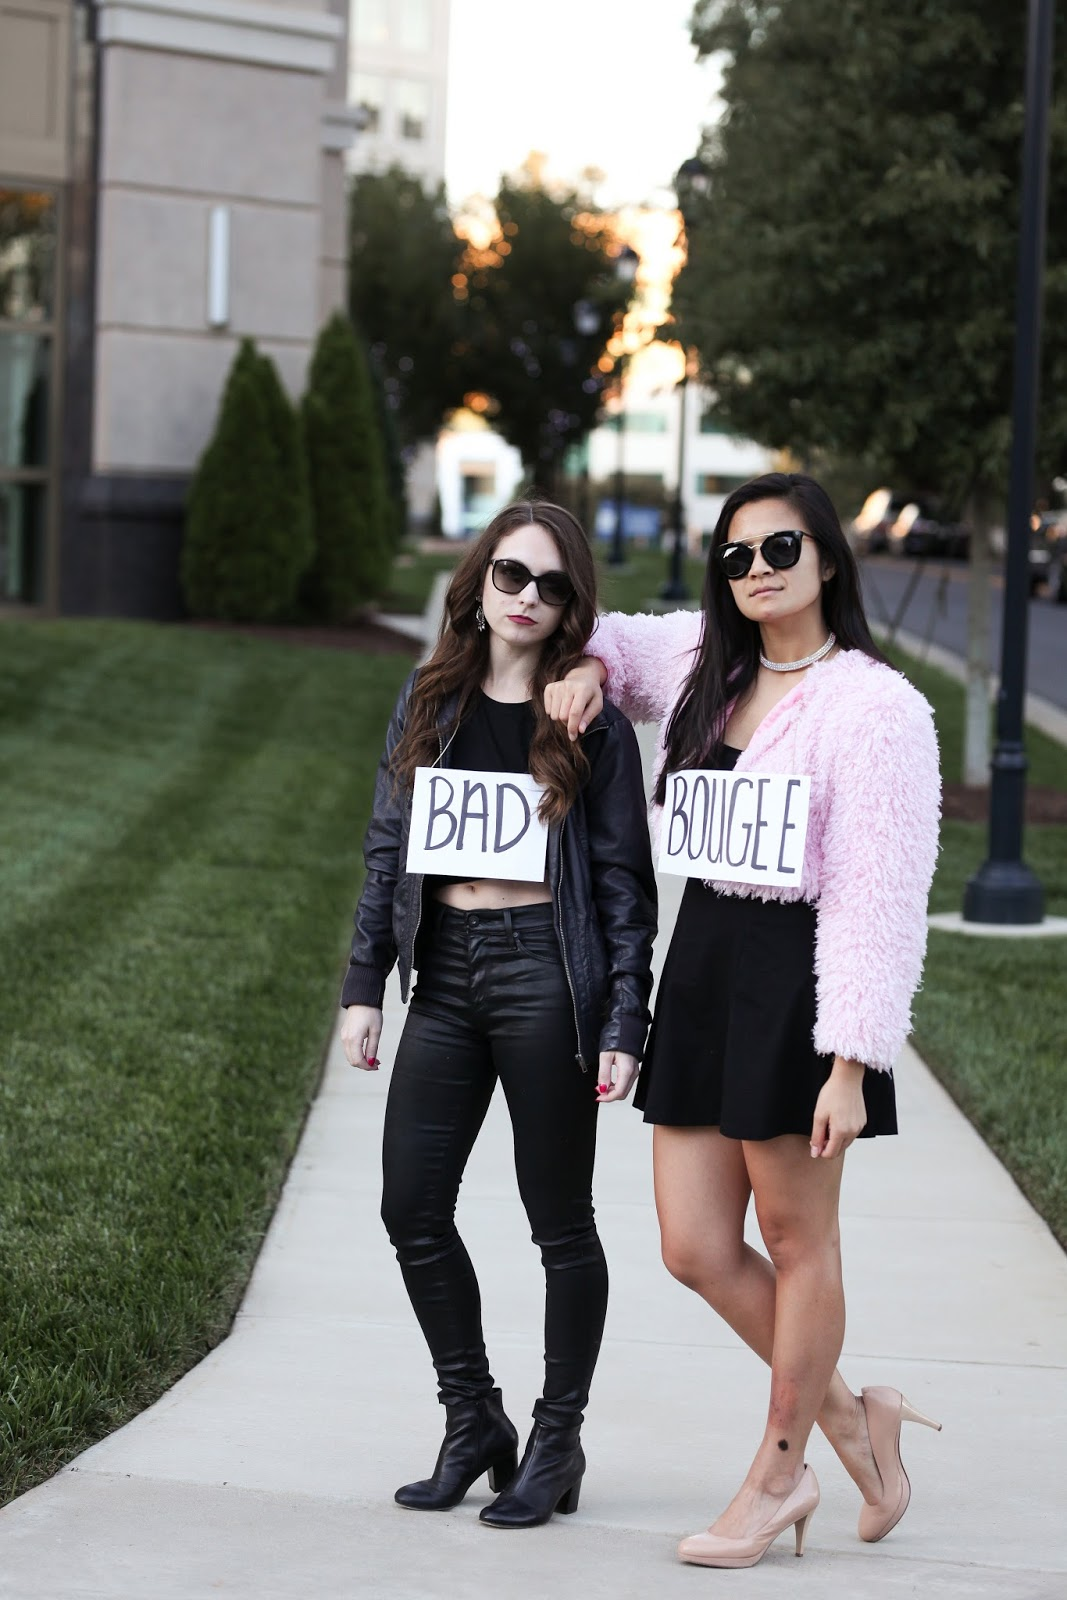 Last minute partner costume idea - Bad and Boujee